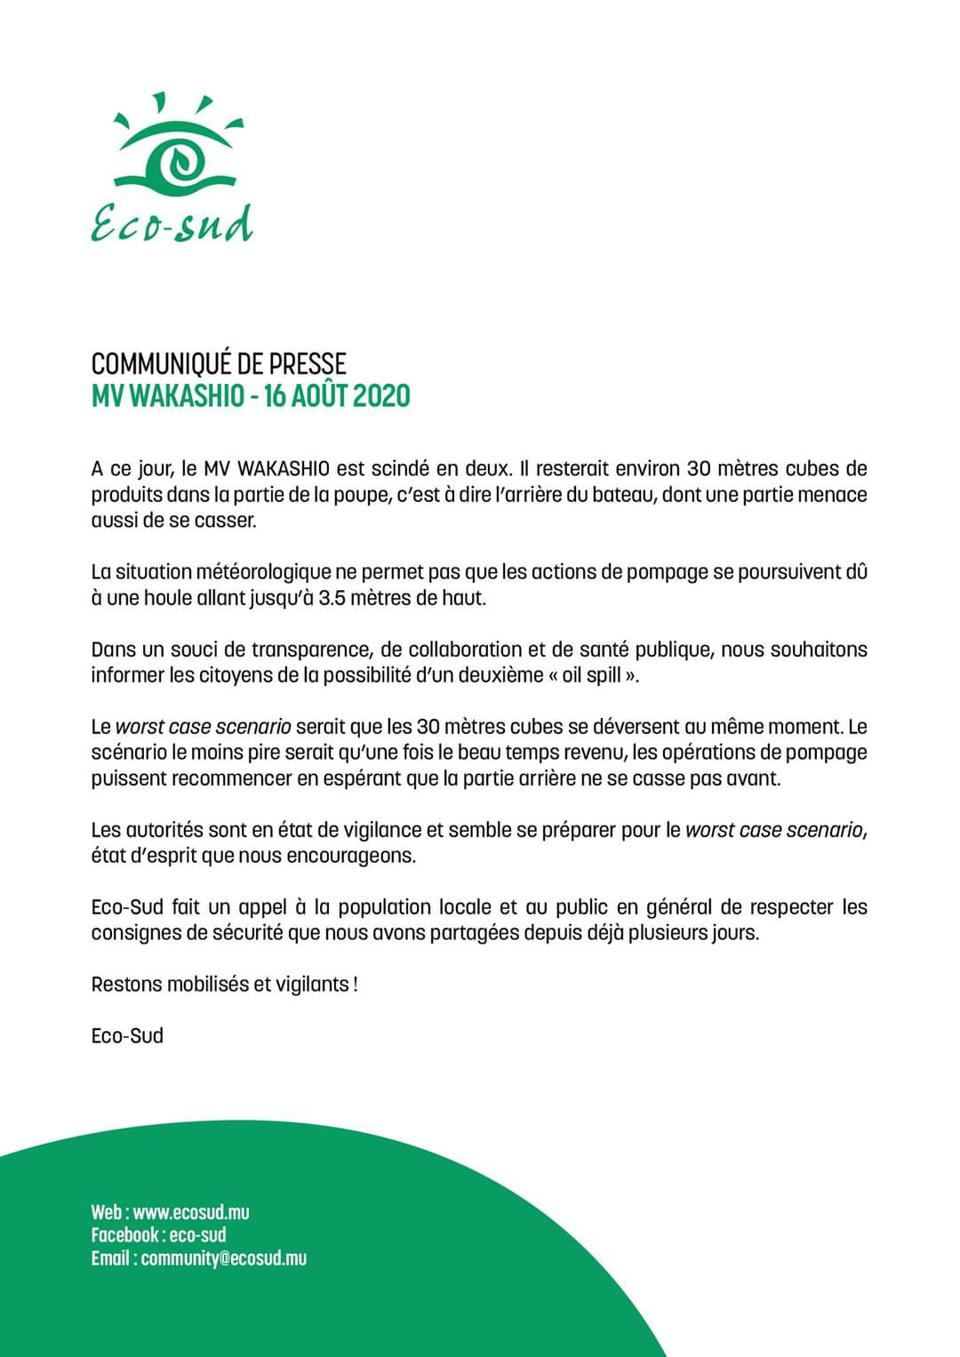 Press Release by Mauritian Environmental NGO Eco Sud highlights risk of a second oil spill from the 30 square meters (7000 gallons) of oil remaining on board